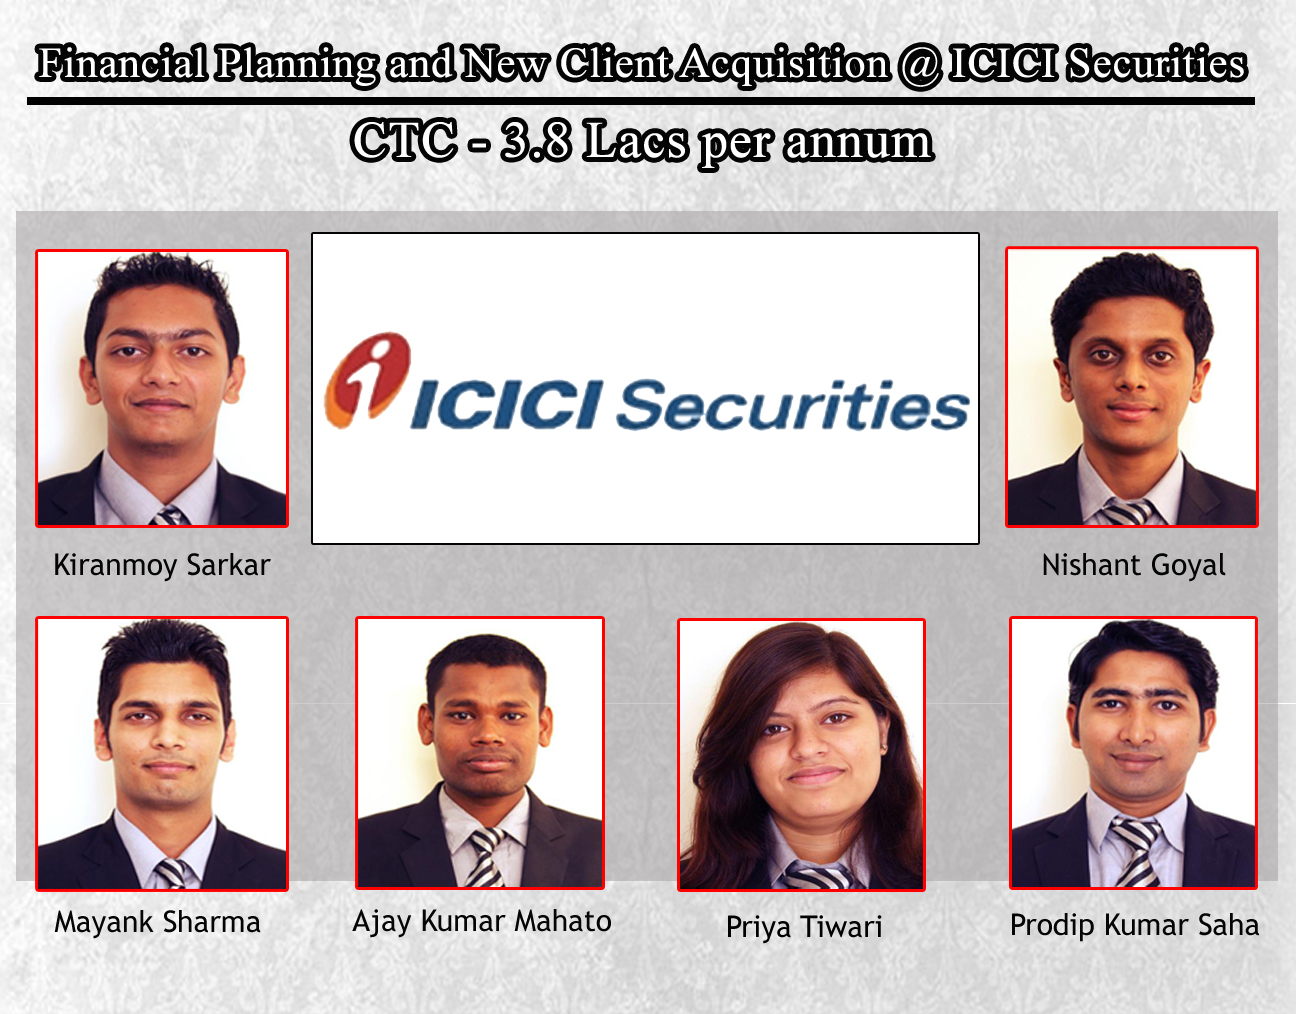 Financial Planning and New Client Acquisition @ ICICI Securities